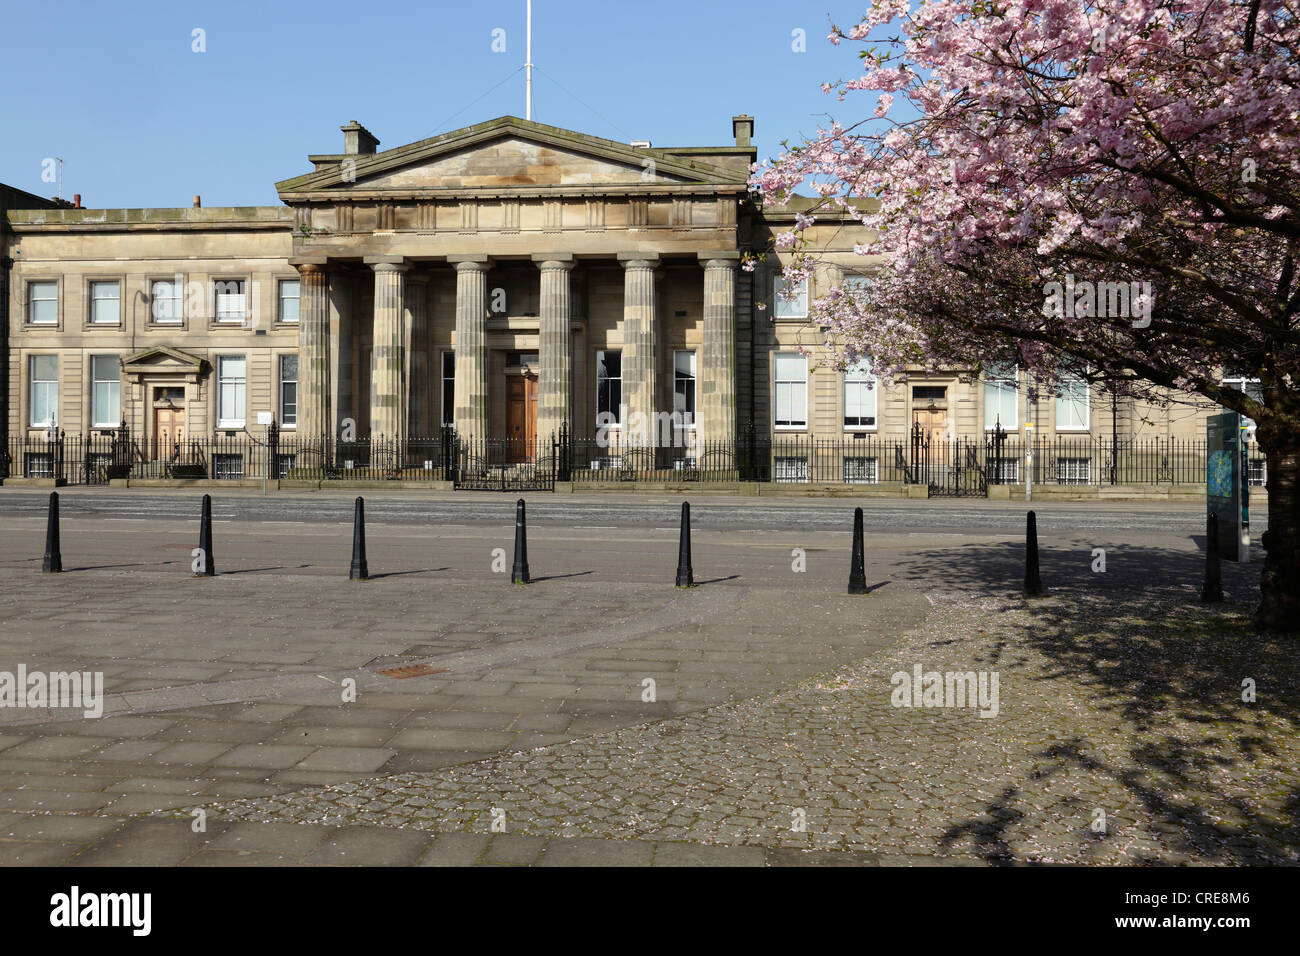 Glasgow Old High Court on Saltmarket in Spring, Scotland, UK - Stock Image